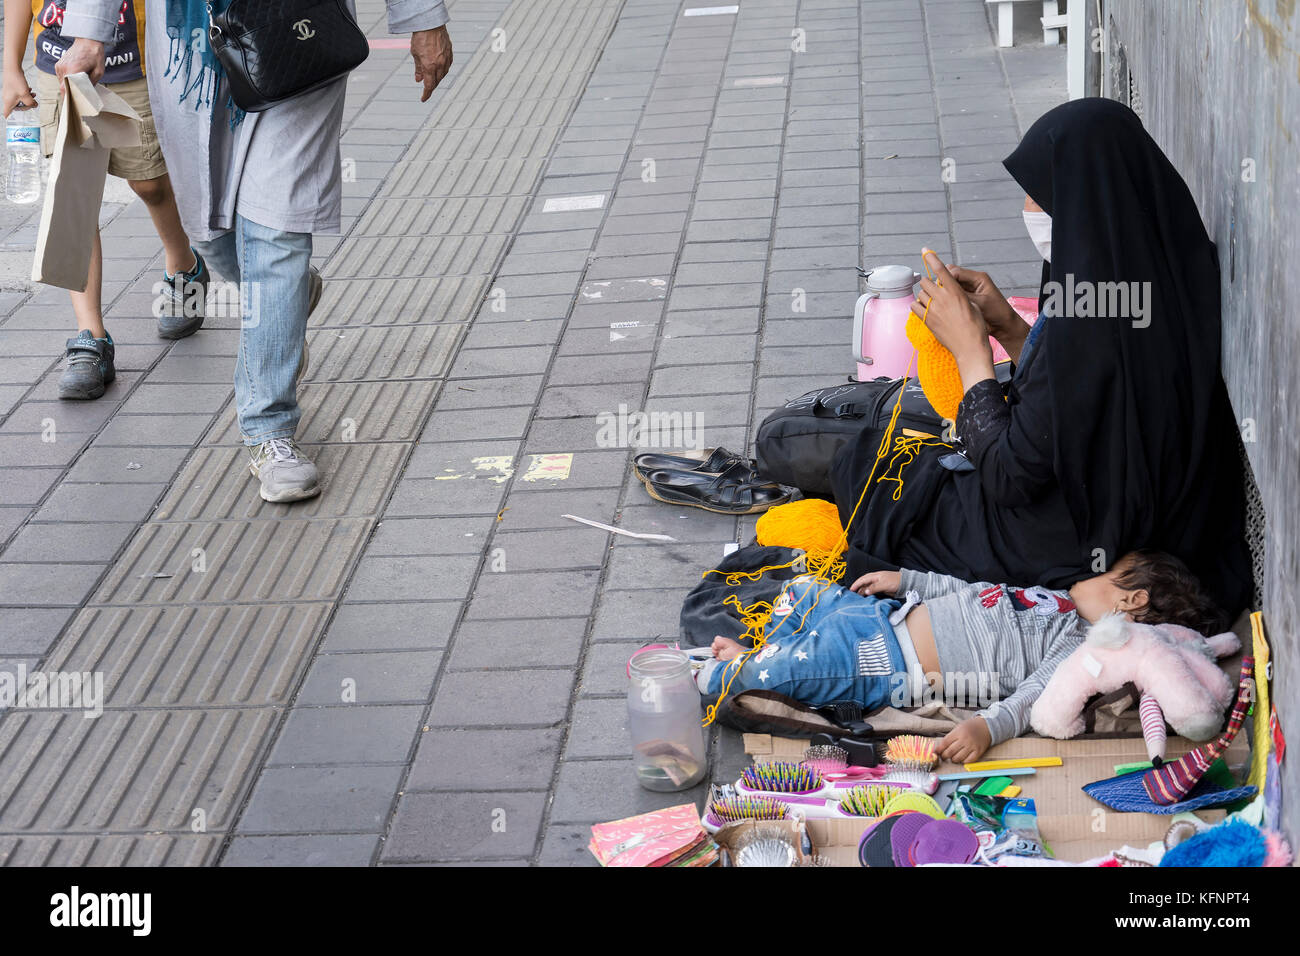 Tehran, IRAN - September 3, 2017 Street photography, muslim woman weave loofah with yellow yarn in pavement. little - Stock Image